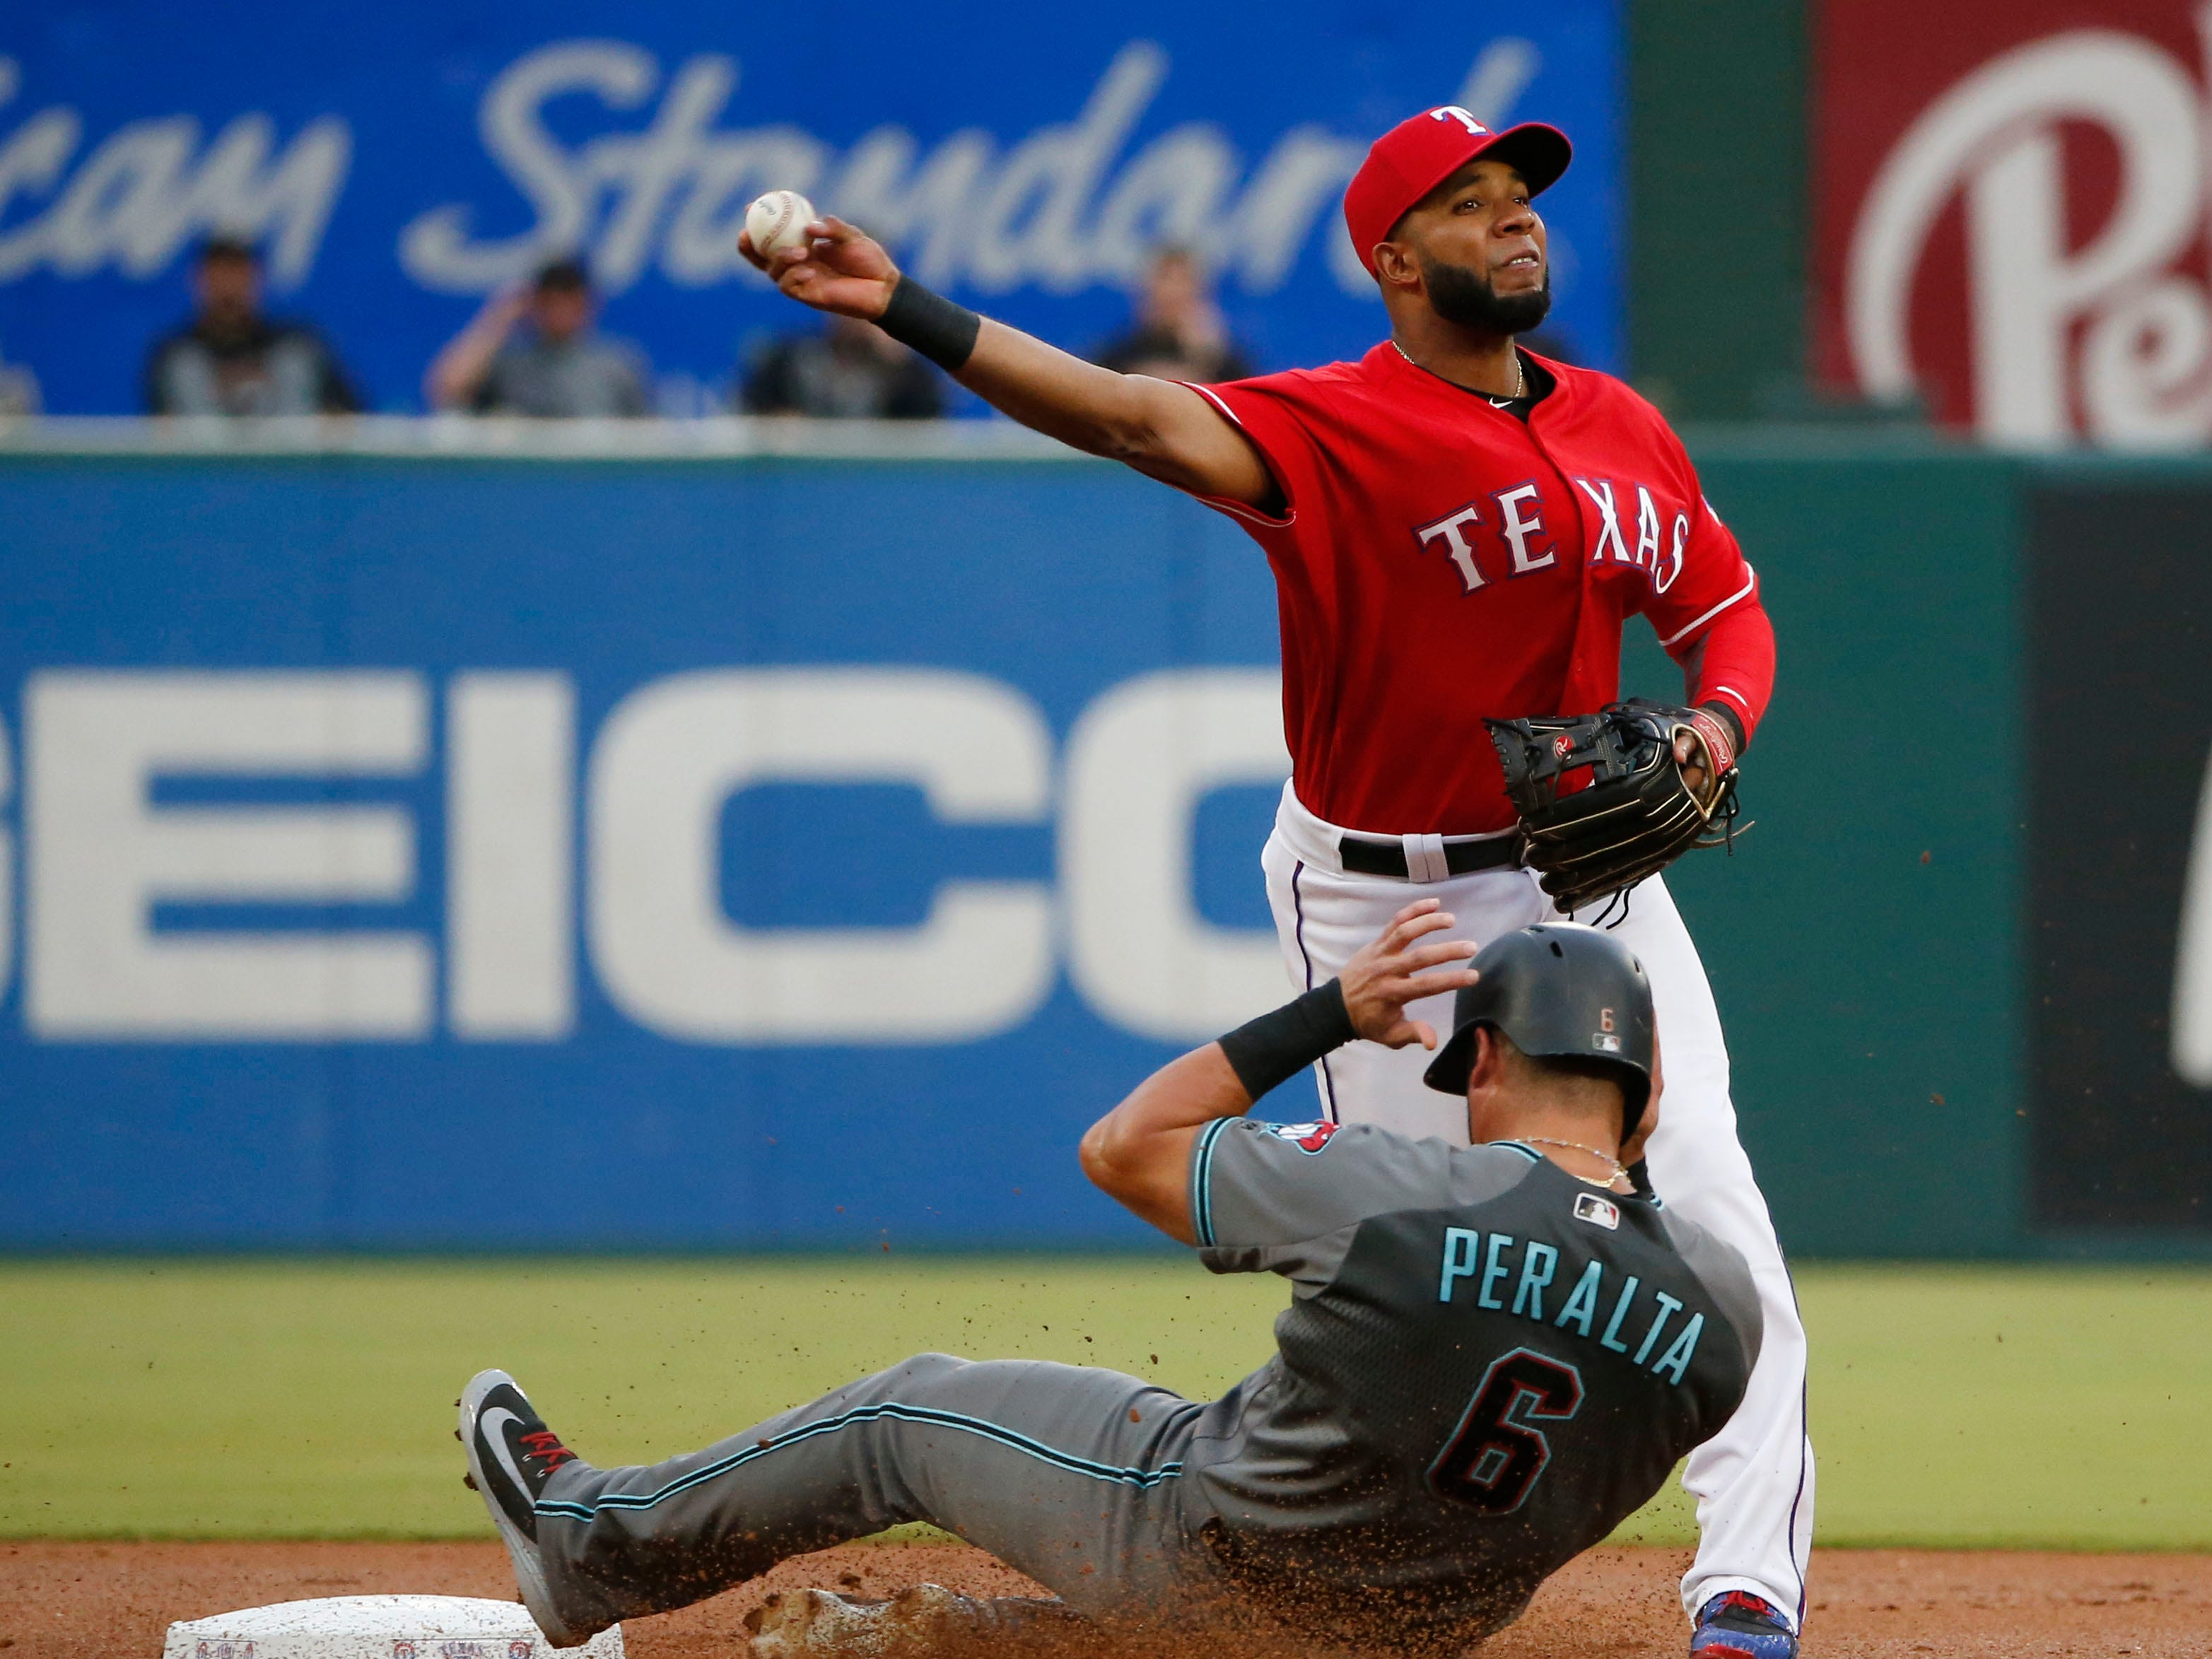 Arizona Diamondbacks' David Peralta (6) is forced out by Texas Rangers shortstop Elvis Andrus (1) for a double play that ended the first inning of a baseball game Tuesday, Aug. 14, 2018, in Arlington, Texas.